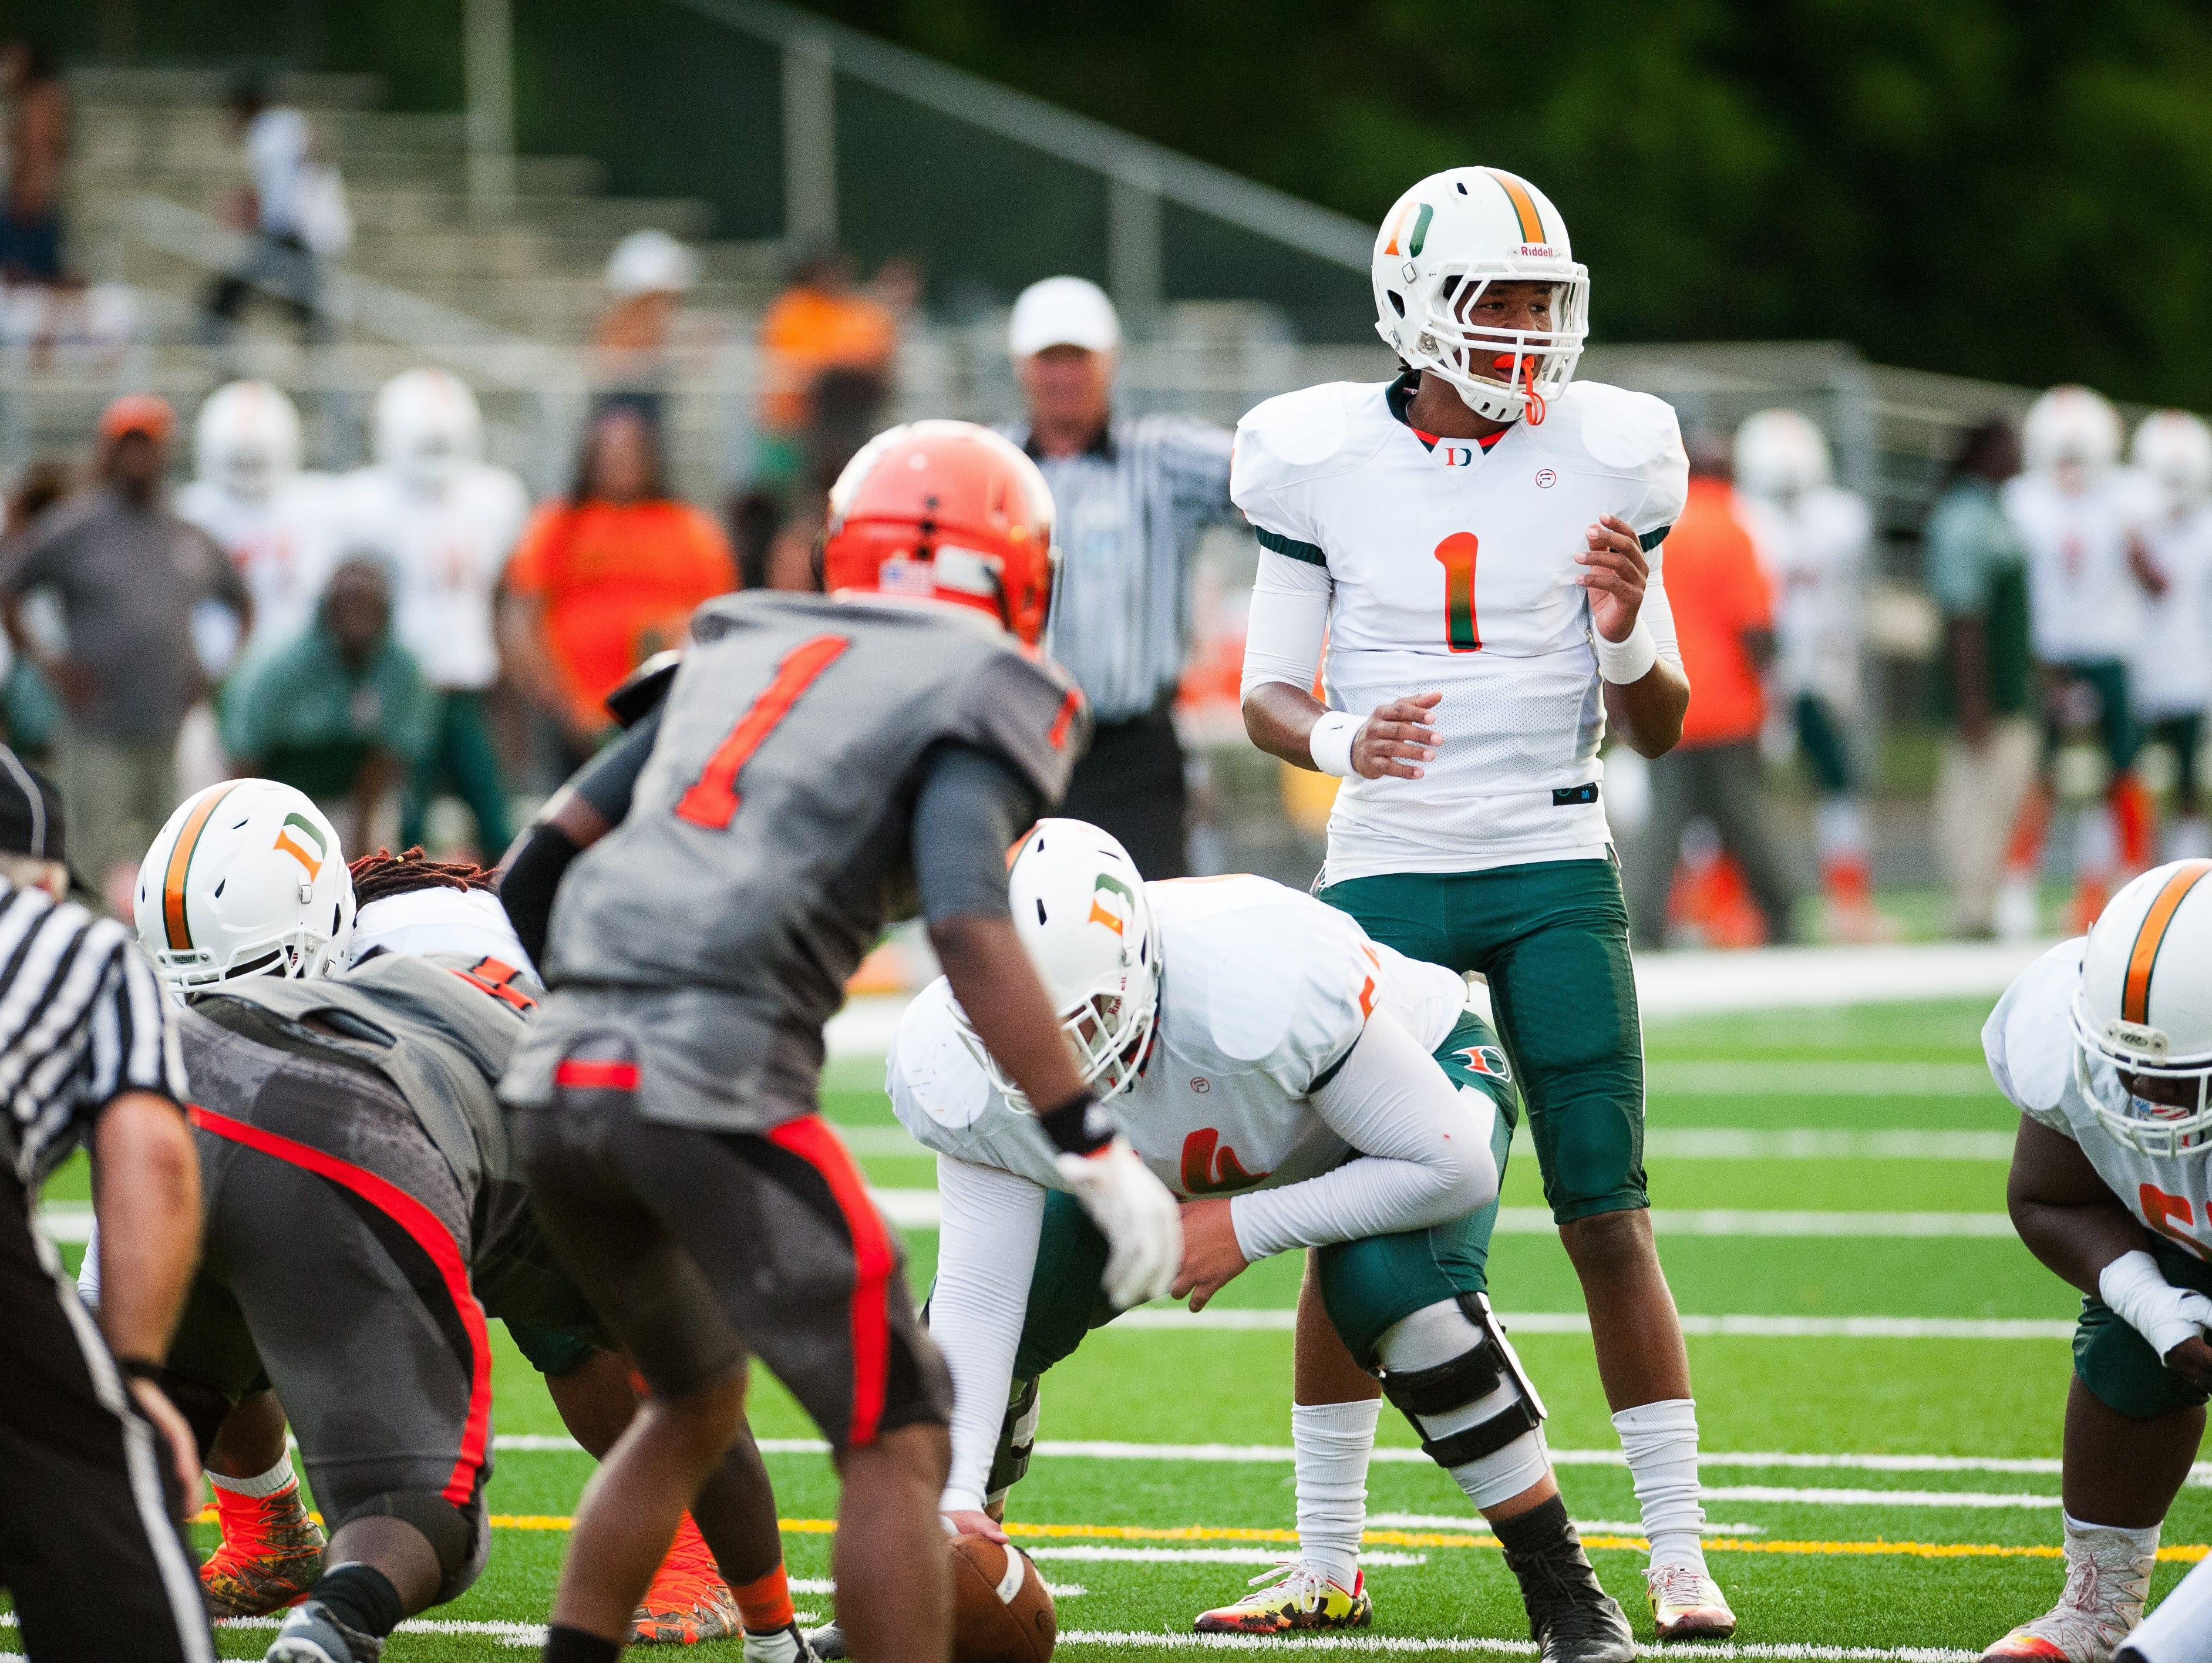 Dunbar junior quarterback Jairus Johnson and the Tigers take on undefeated South Fort Myers on Friday at home.